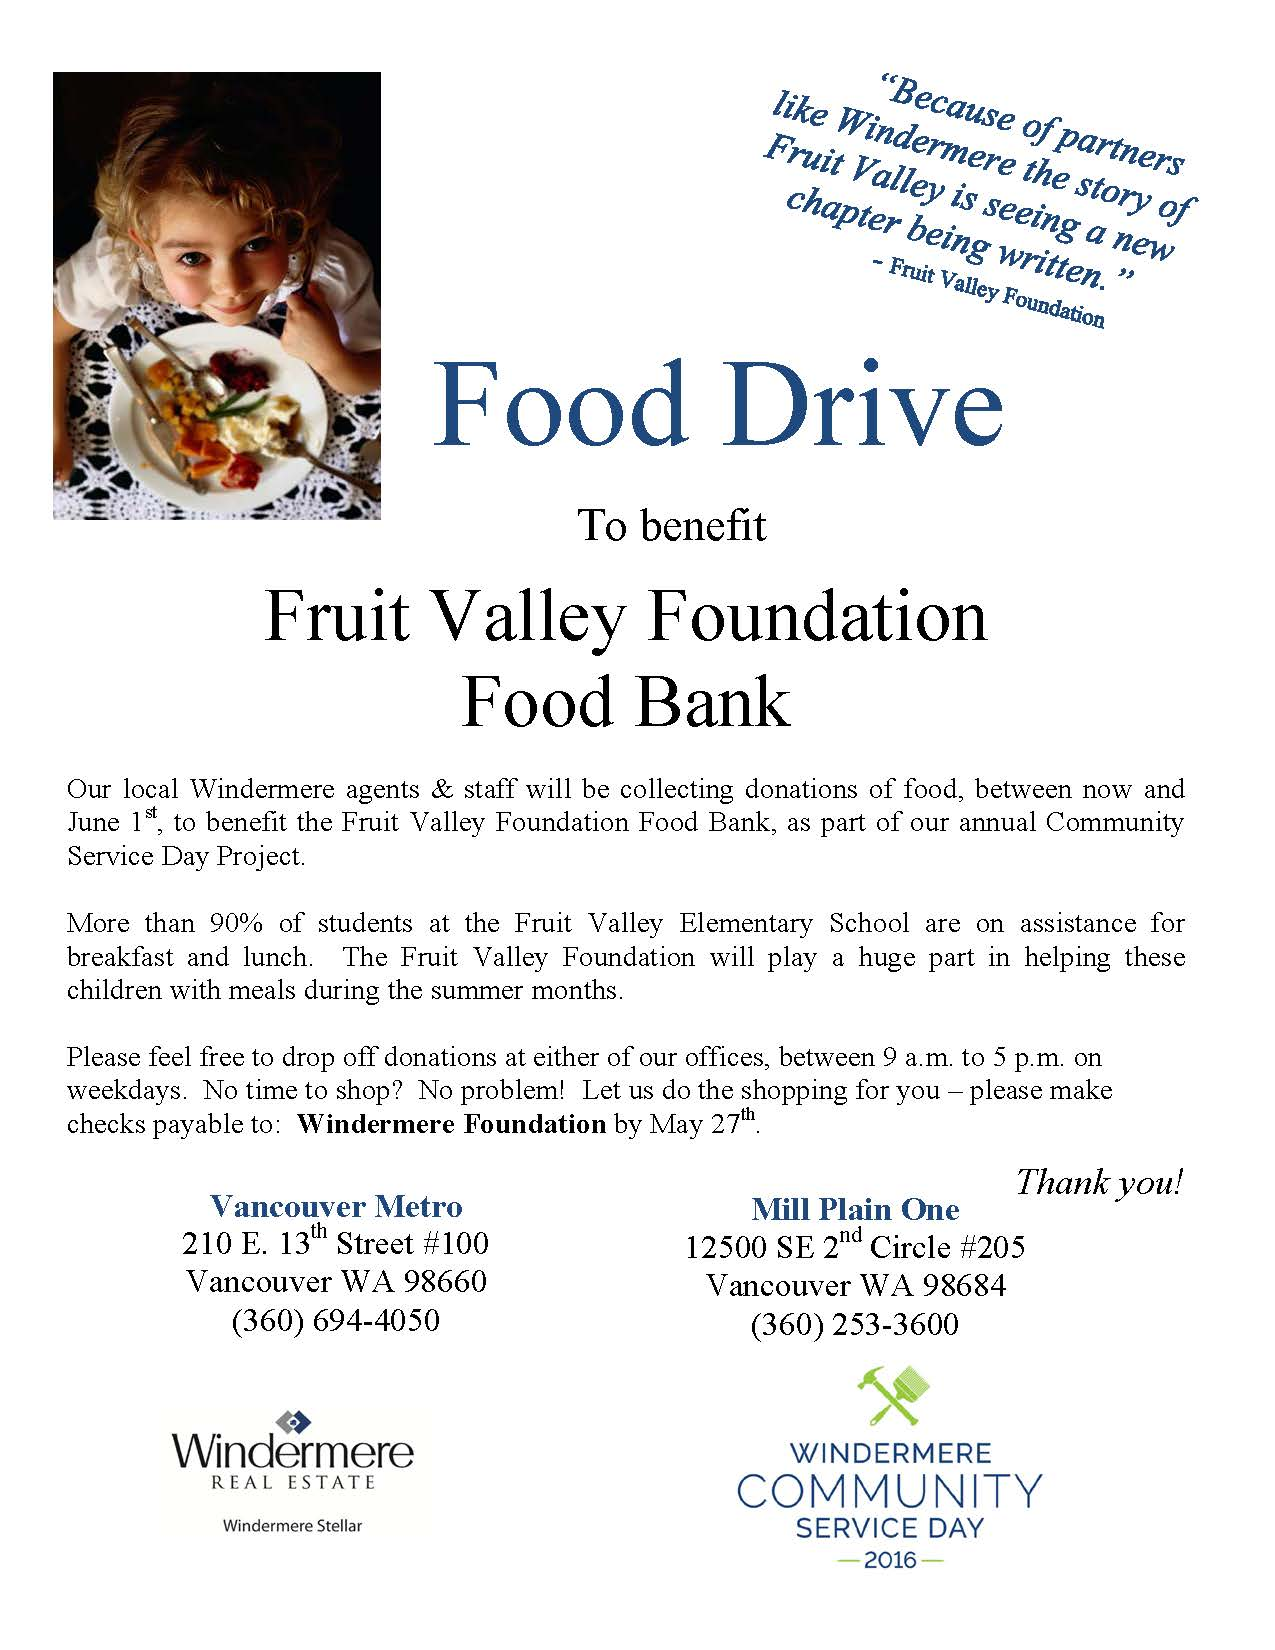 Food Drive Small Flyer 2016